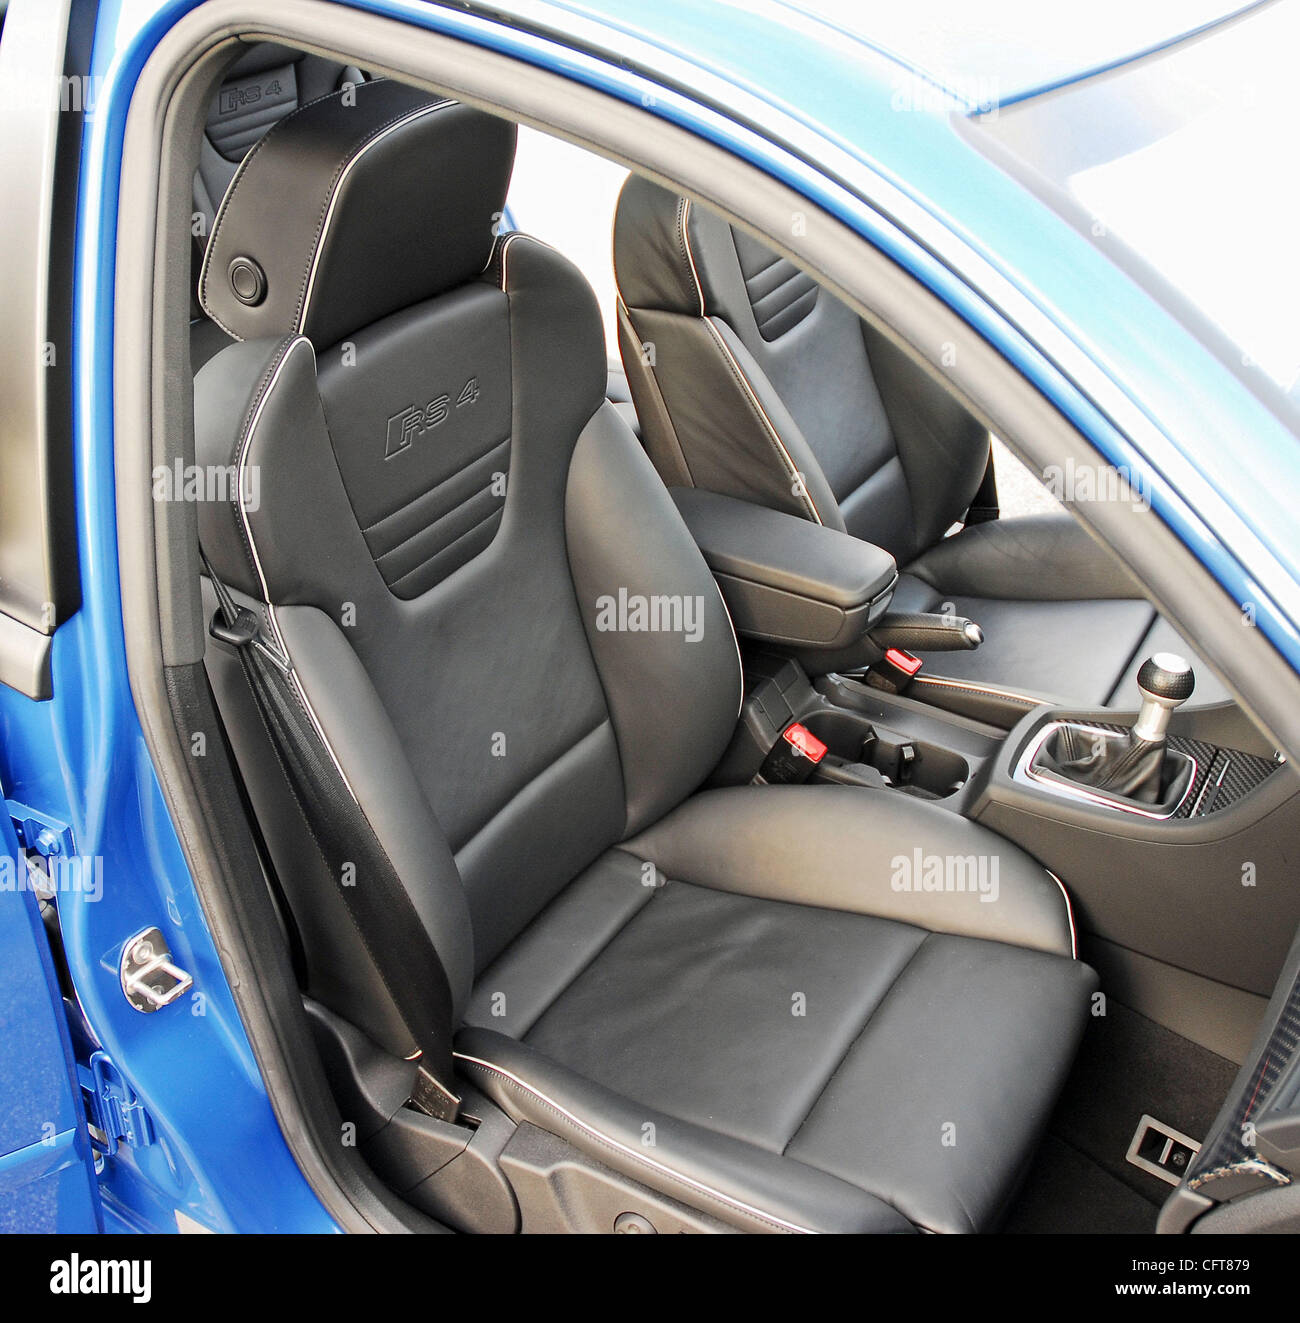 Recaro Seats High Resolution Stock Photography And Images Alamy